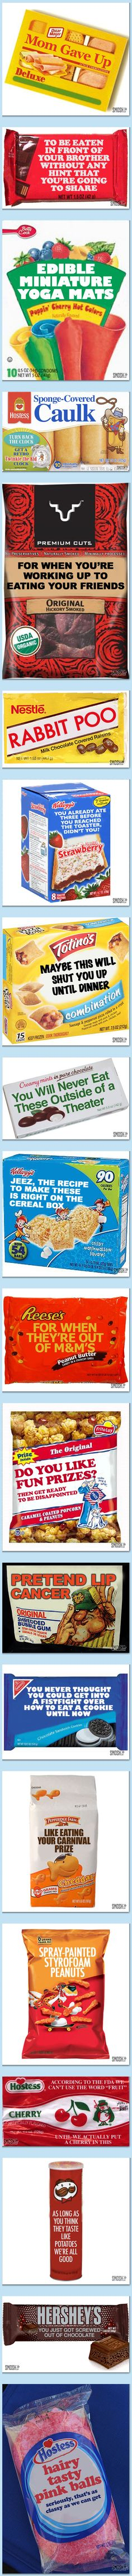 Childhood food favorites